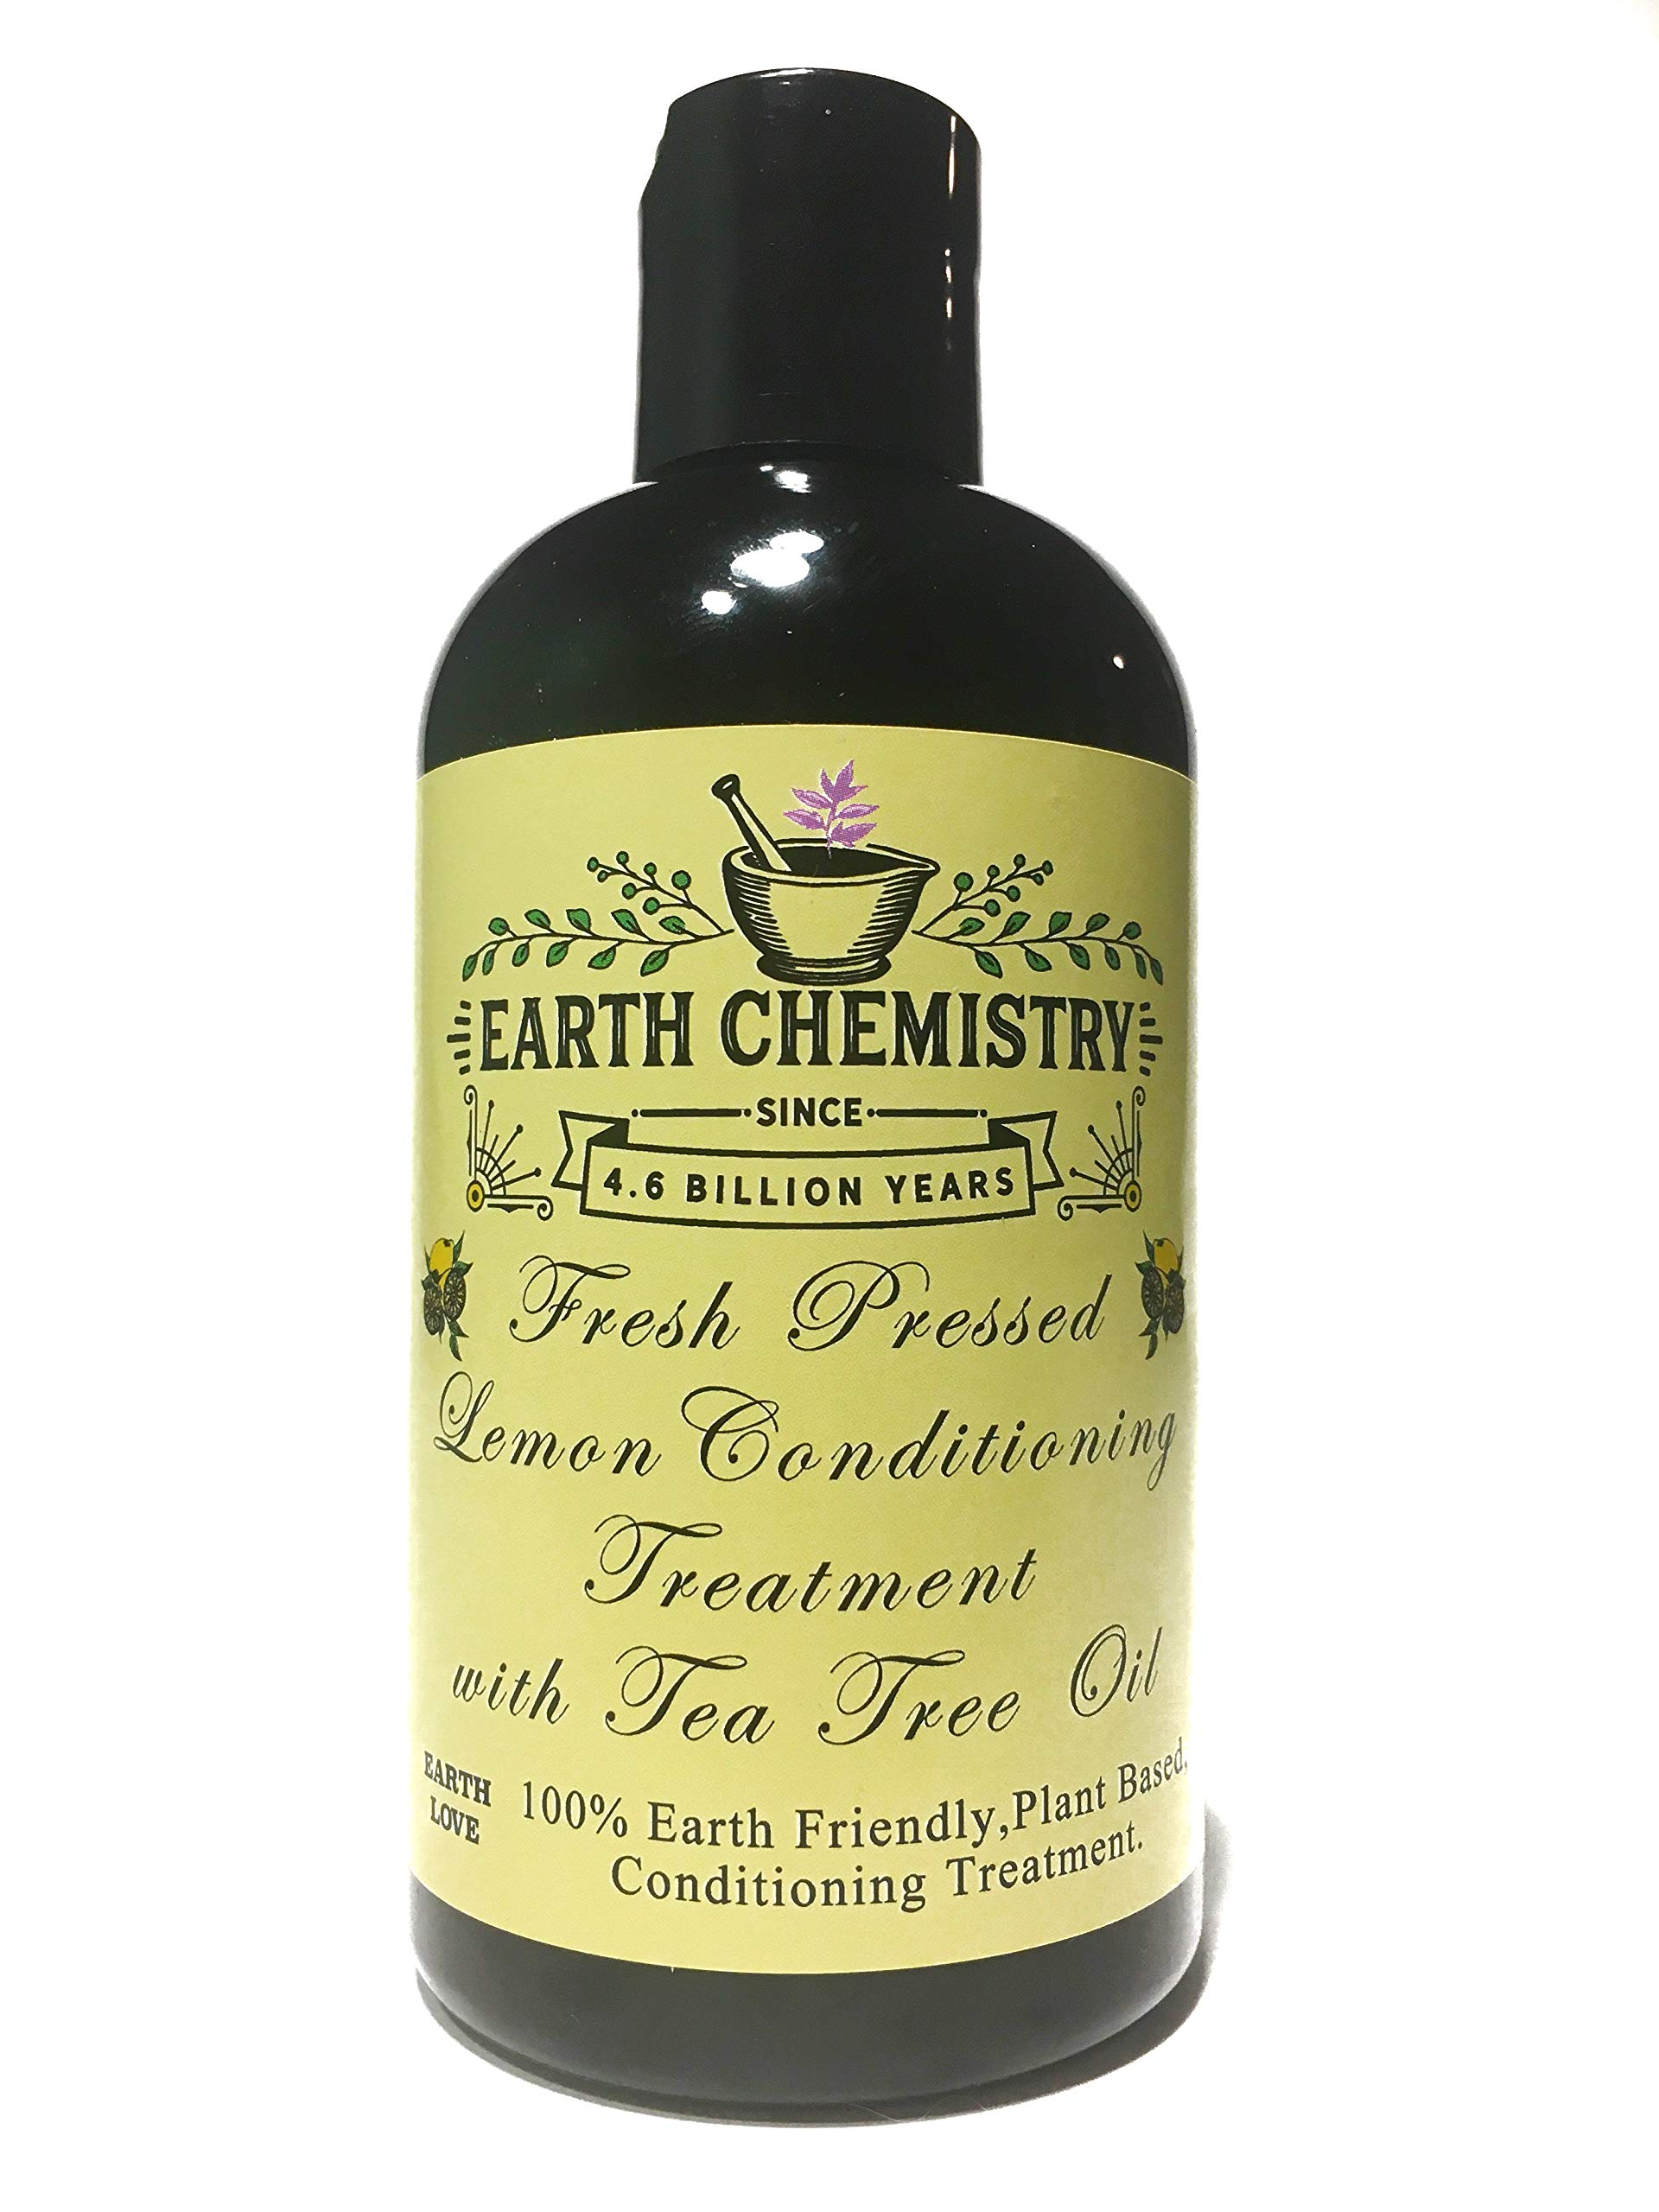 Fresh Pressed Lemon Cream Conditioning Treatment with Tea Tree Oil, Vitamin B5 and Plant Protein for Damaged Hair Repair